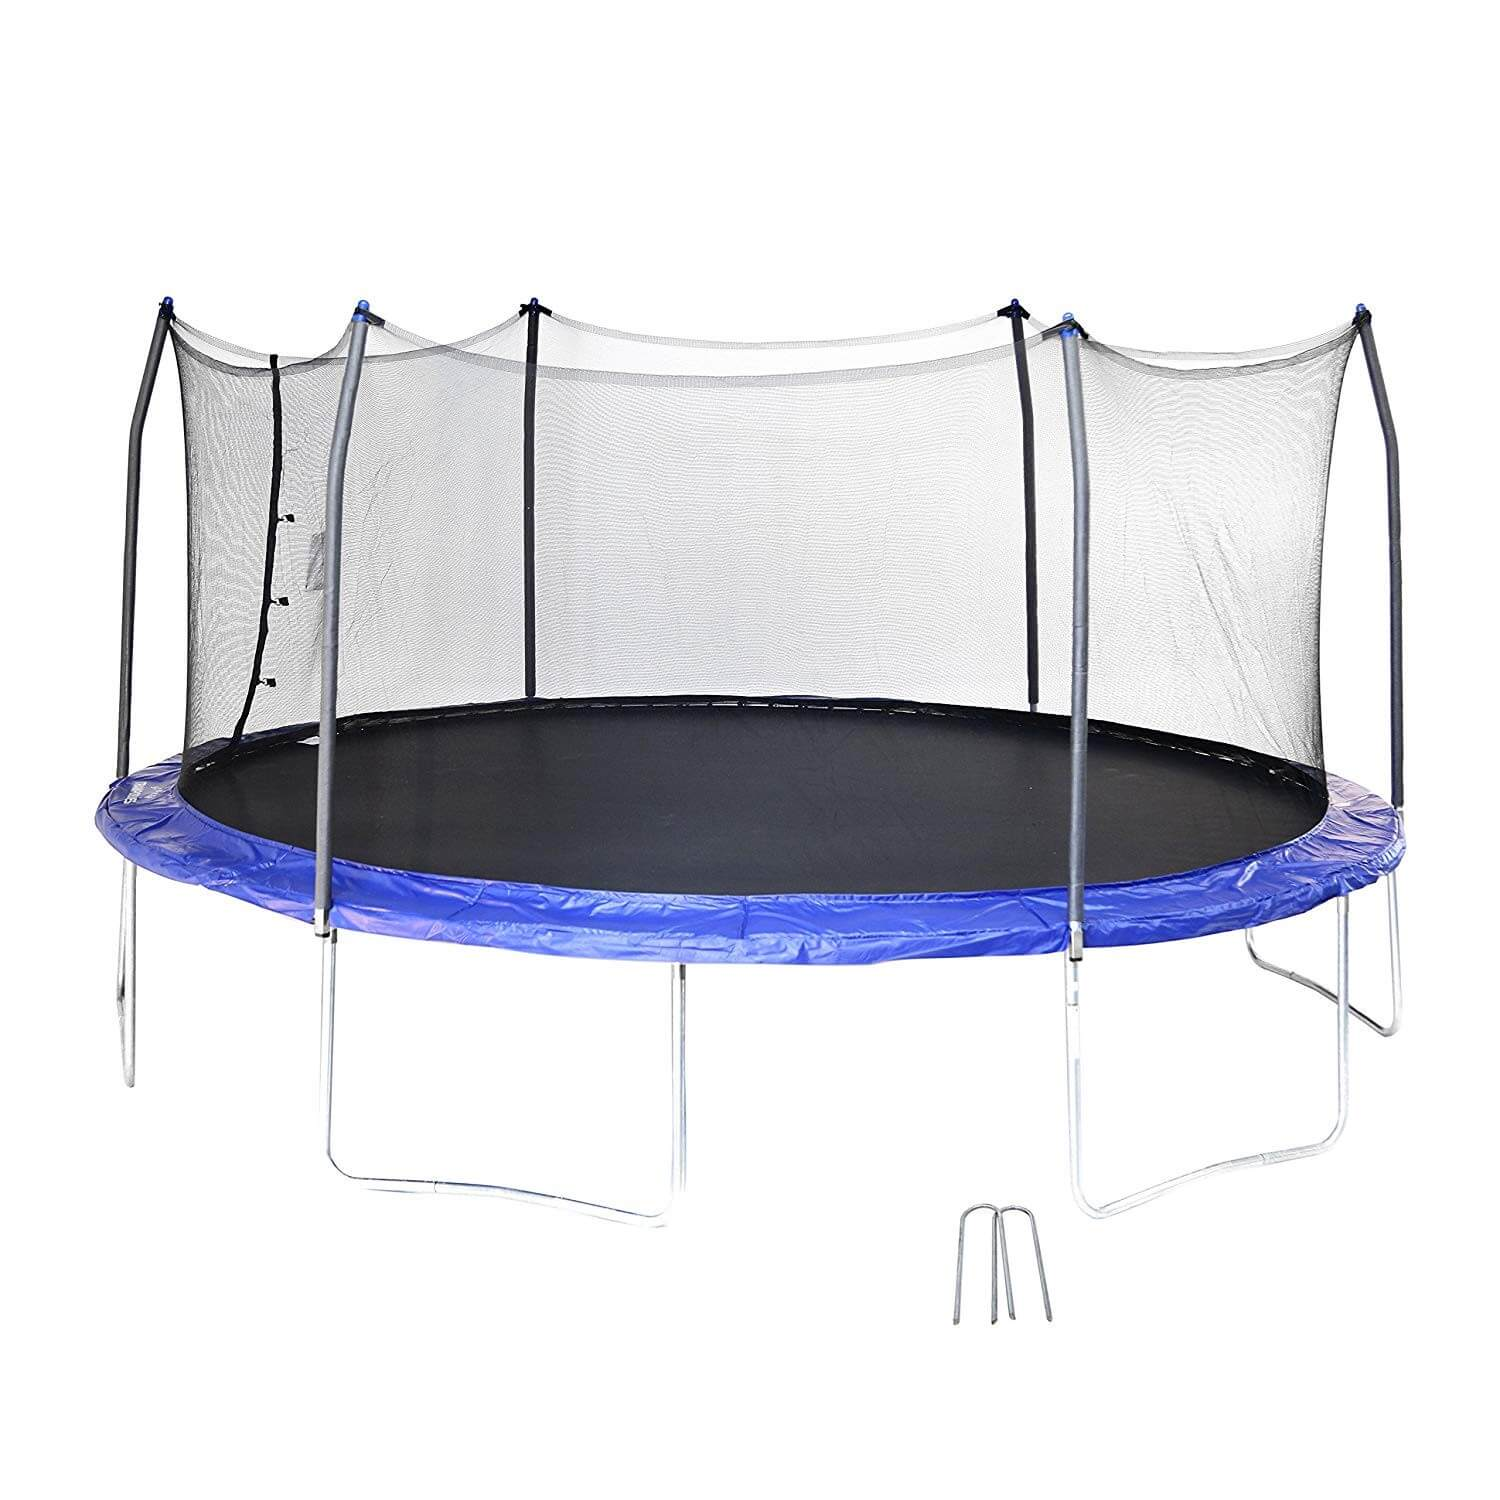 Skywalker 17 Ft. Oval with Enclosure and Wind Stakes